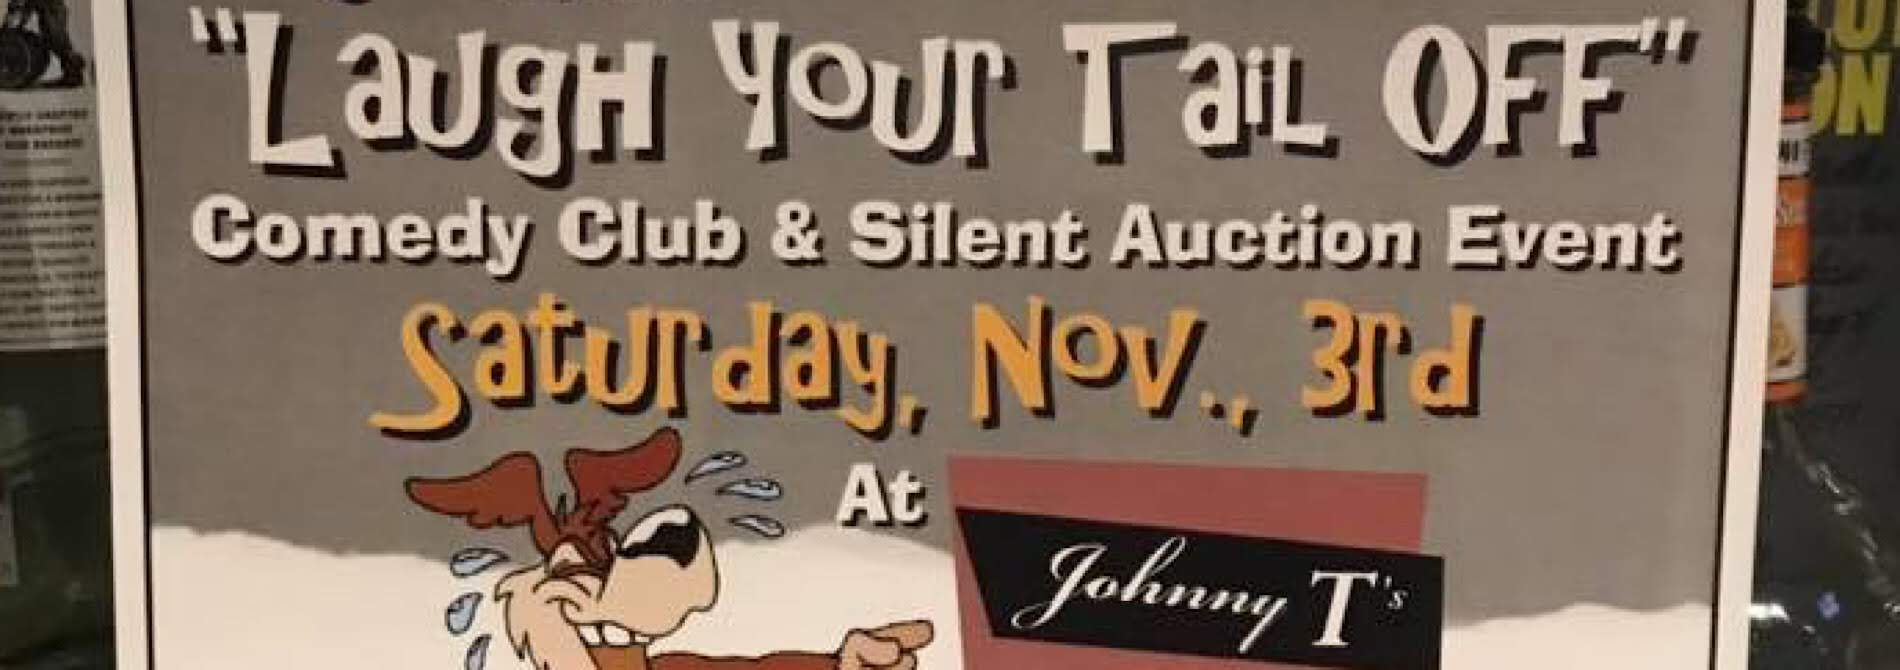 poster advertising comedy club at johnny t's next door in hillsdale mi on saturday november 3, 2018